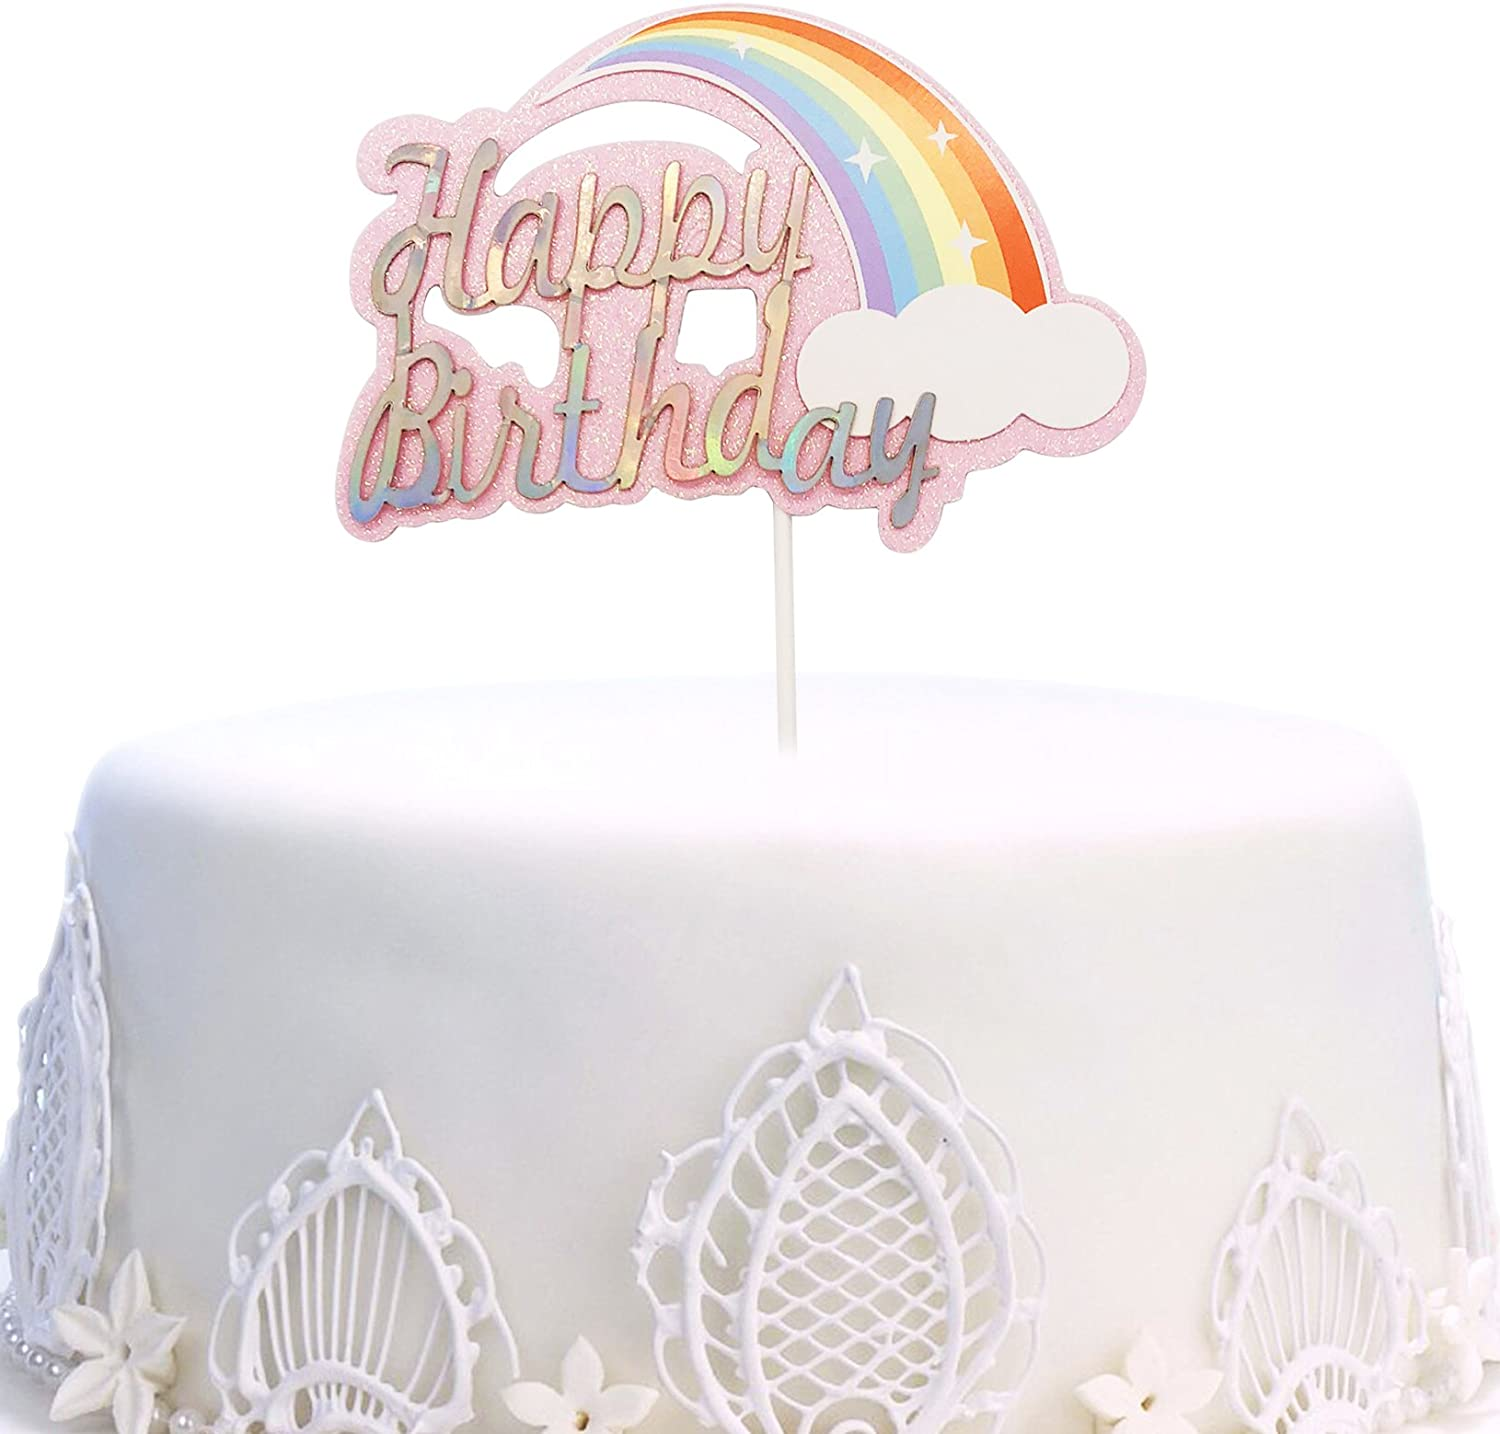 Strange Unicorn Happy Birthday Cake Topper Colorful Acrylic Unicron Funny Birthday Cards Online Elaedamsfinfo